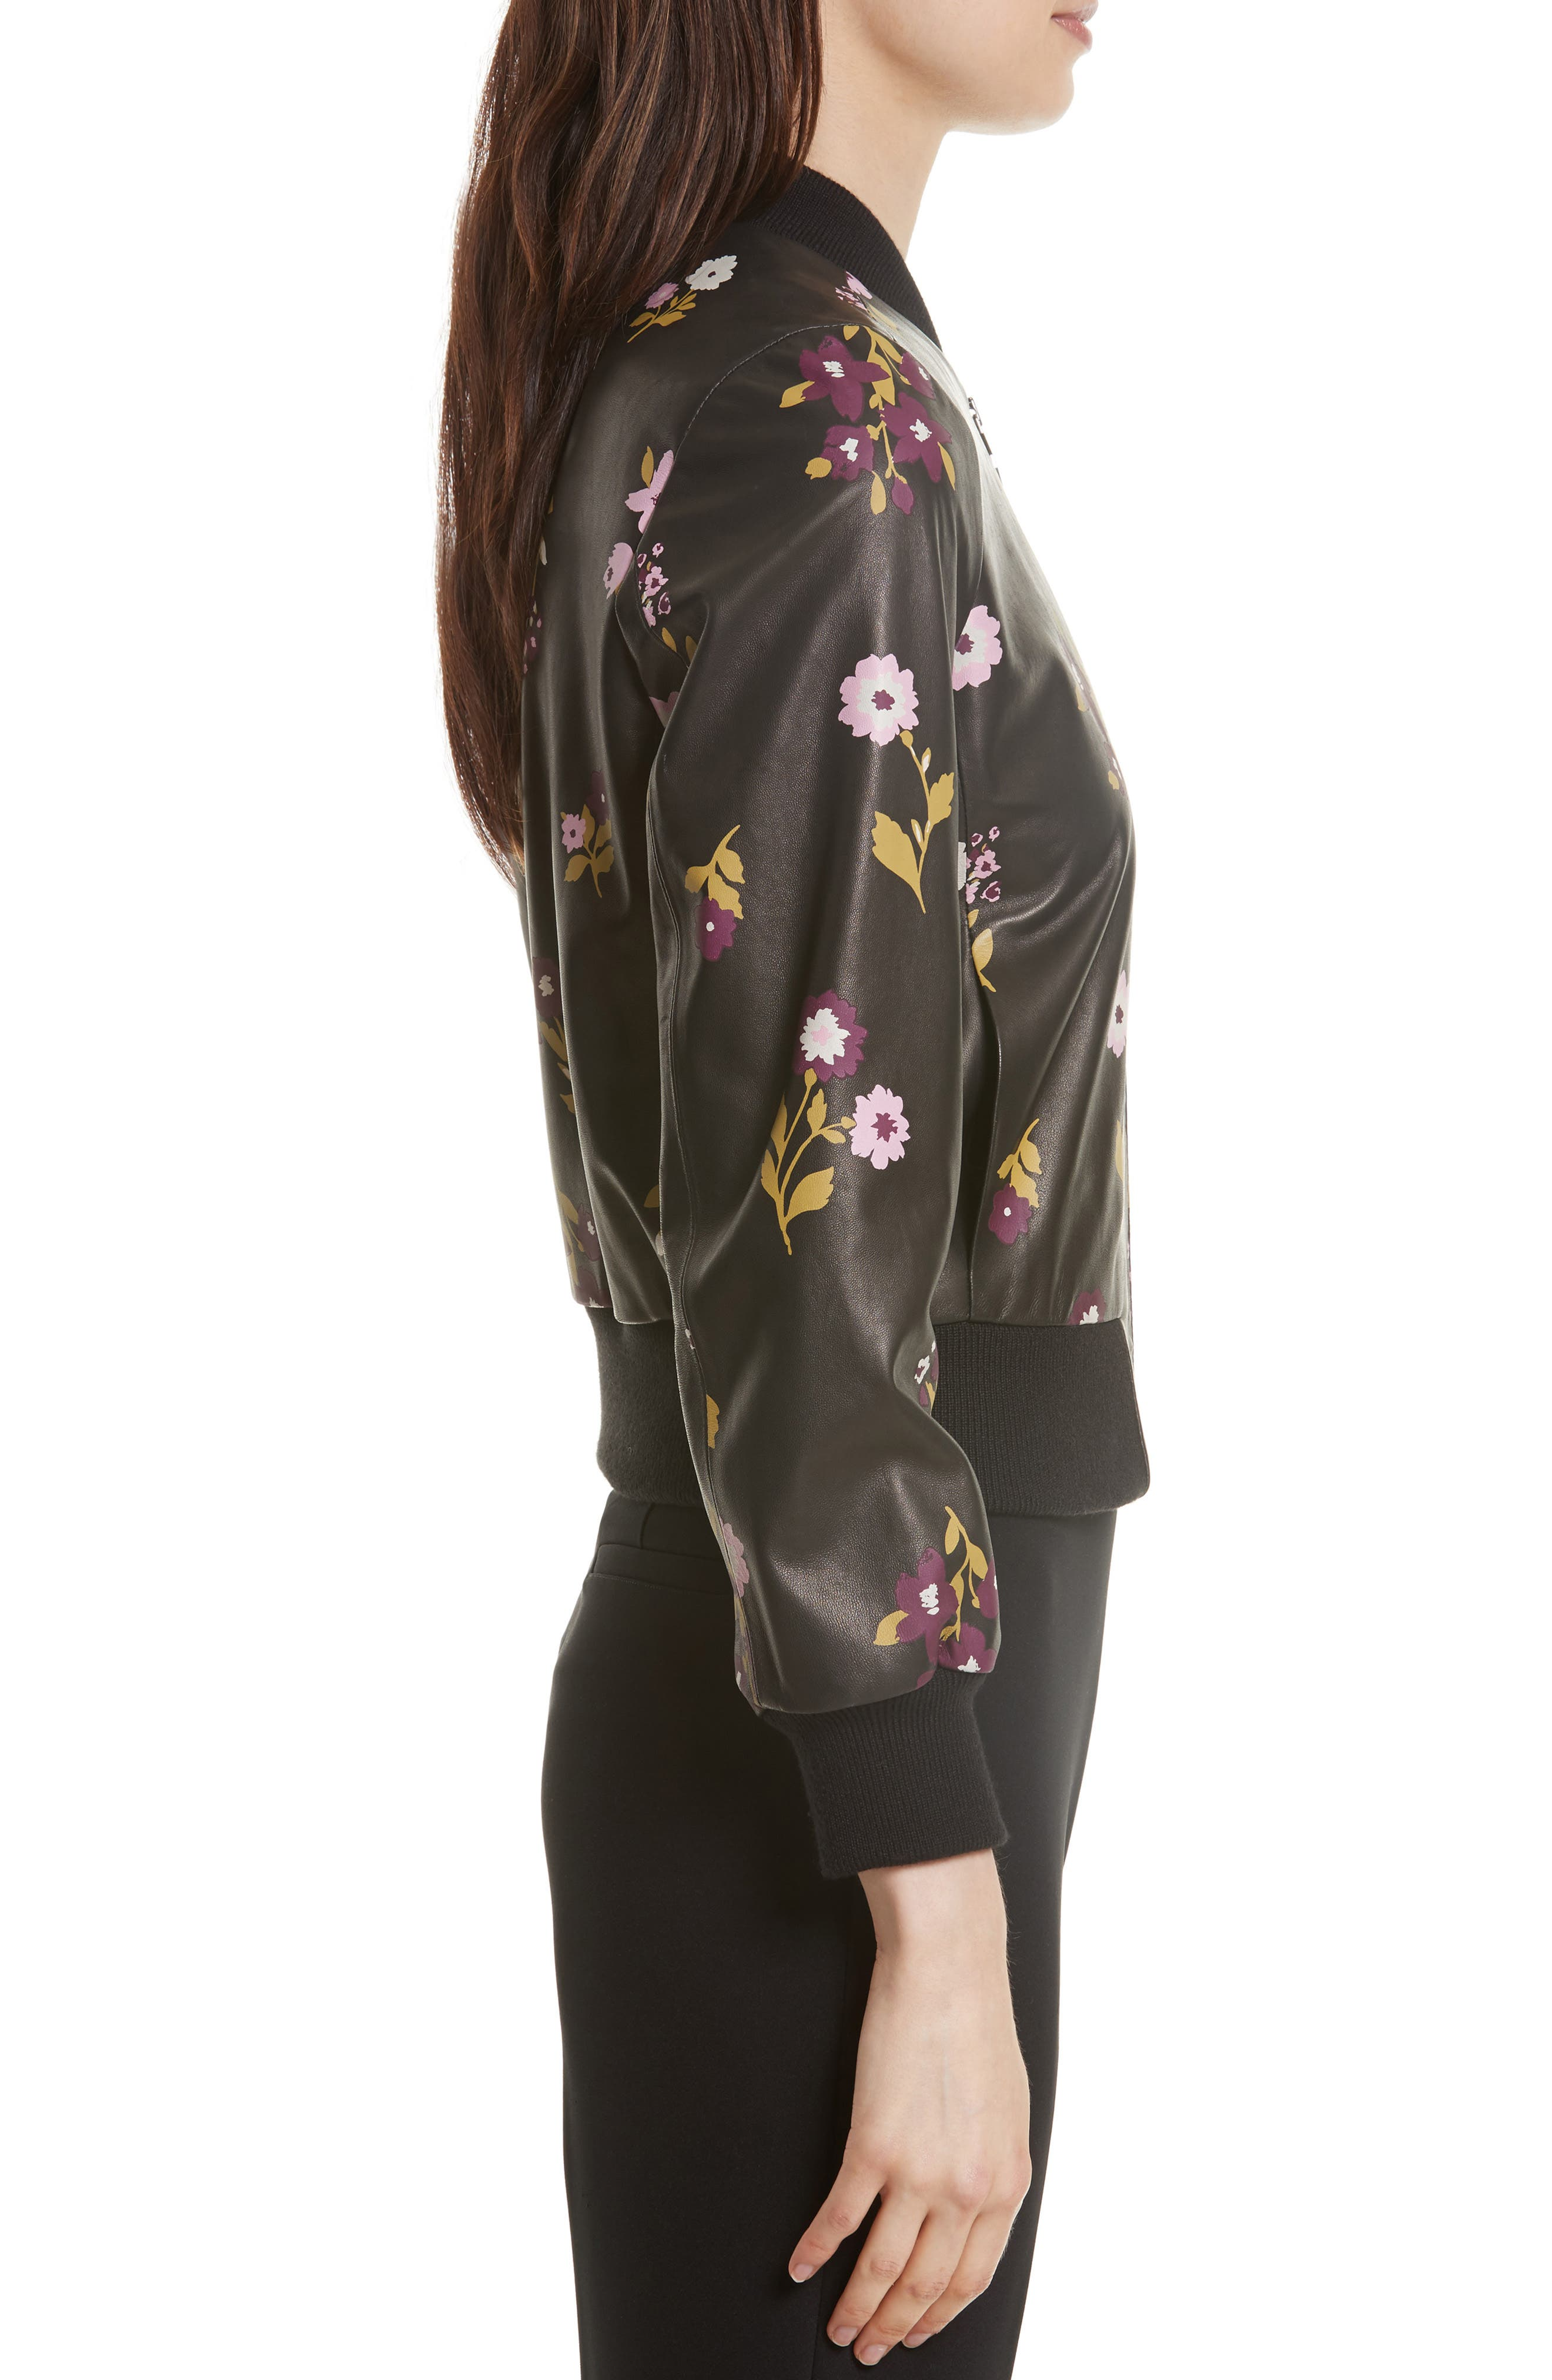 in bloom leather bomber jacket,                             Alternate thumbnail 3, color,                             006